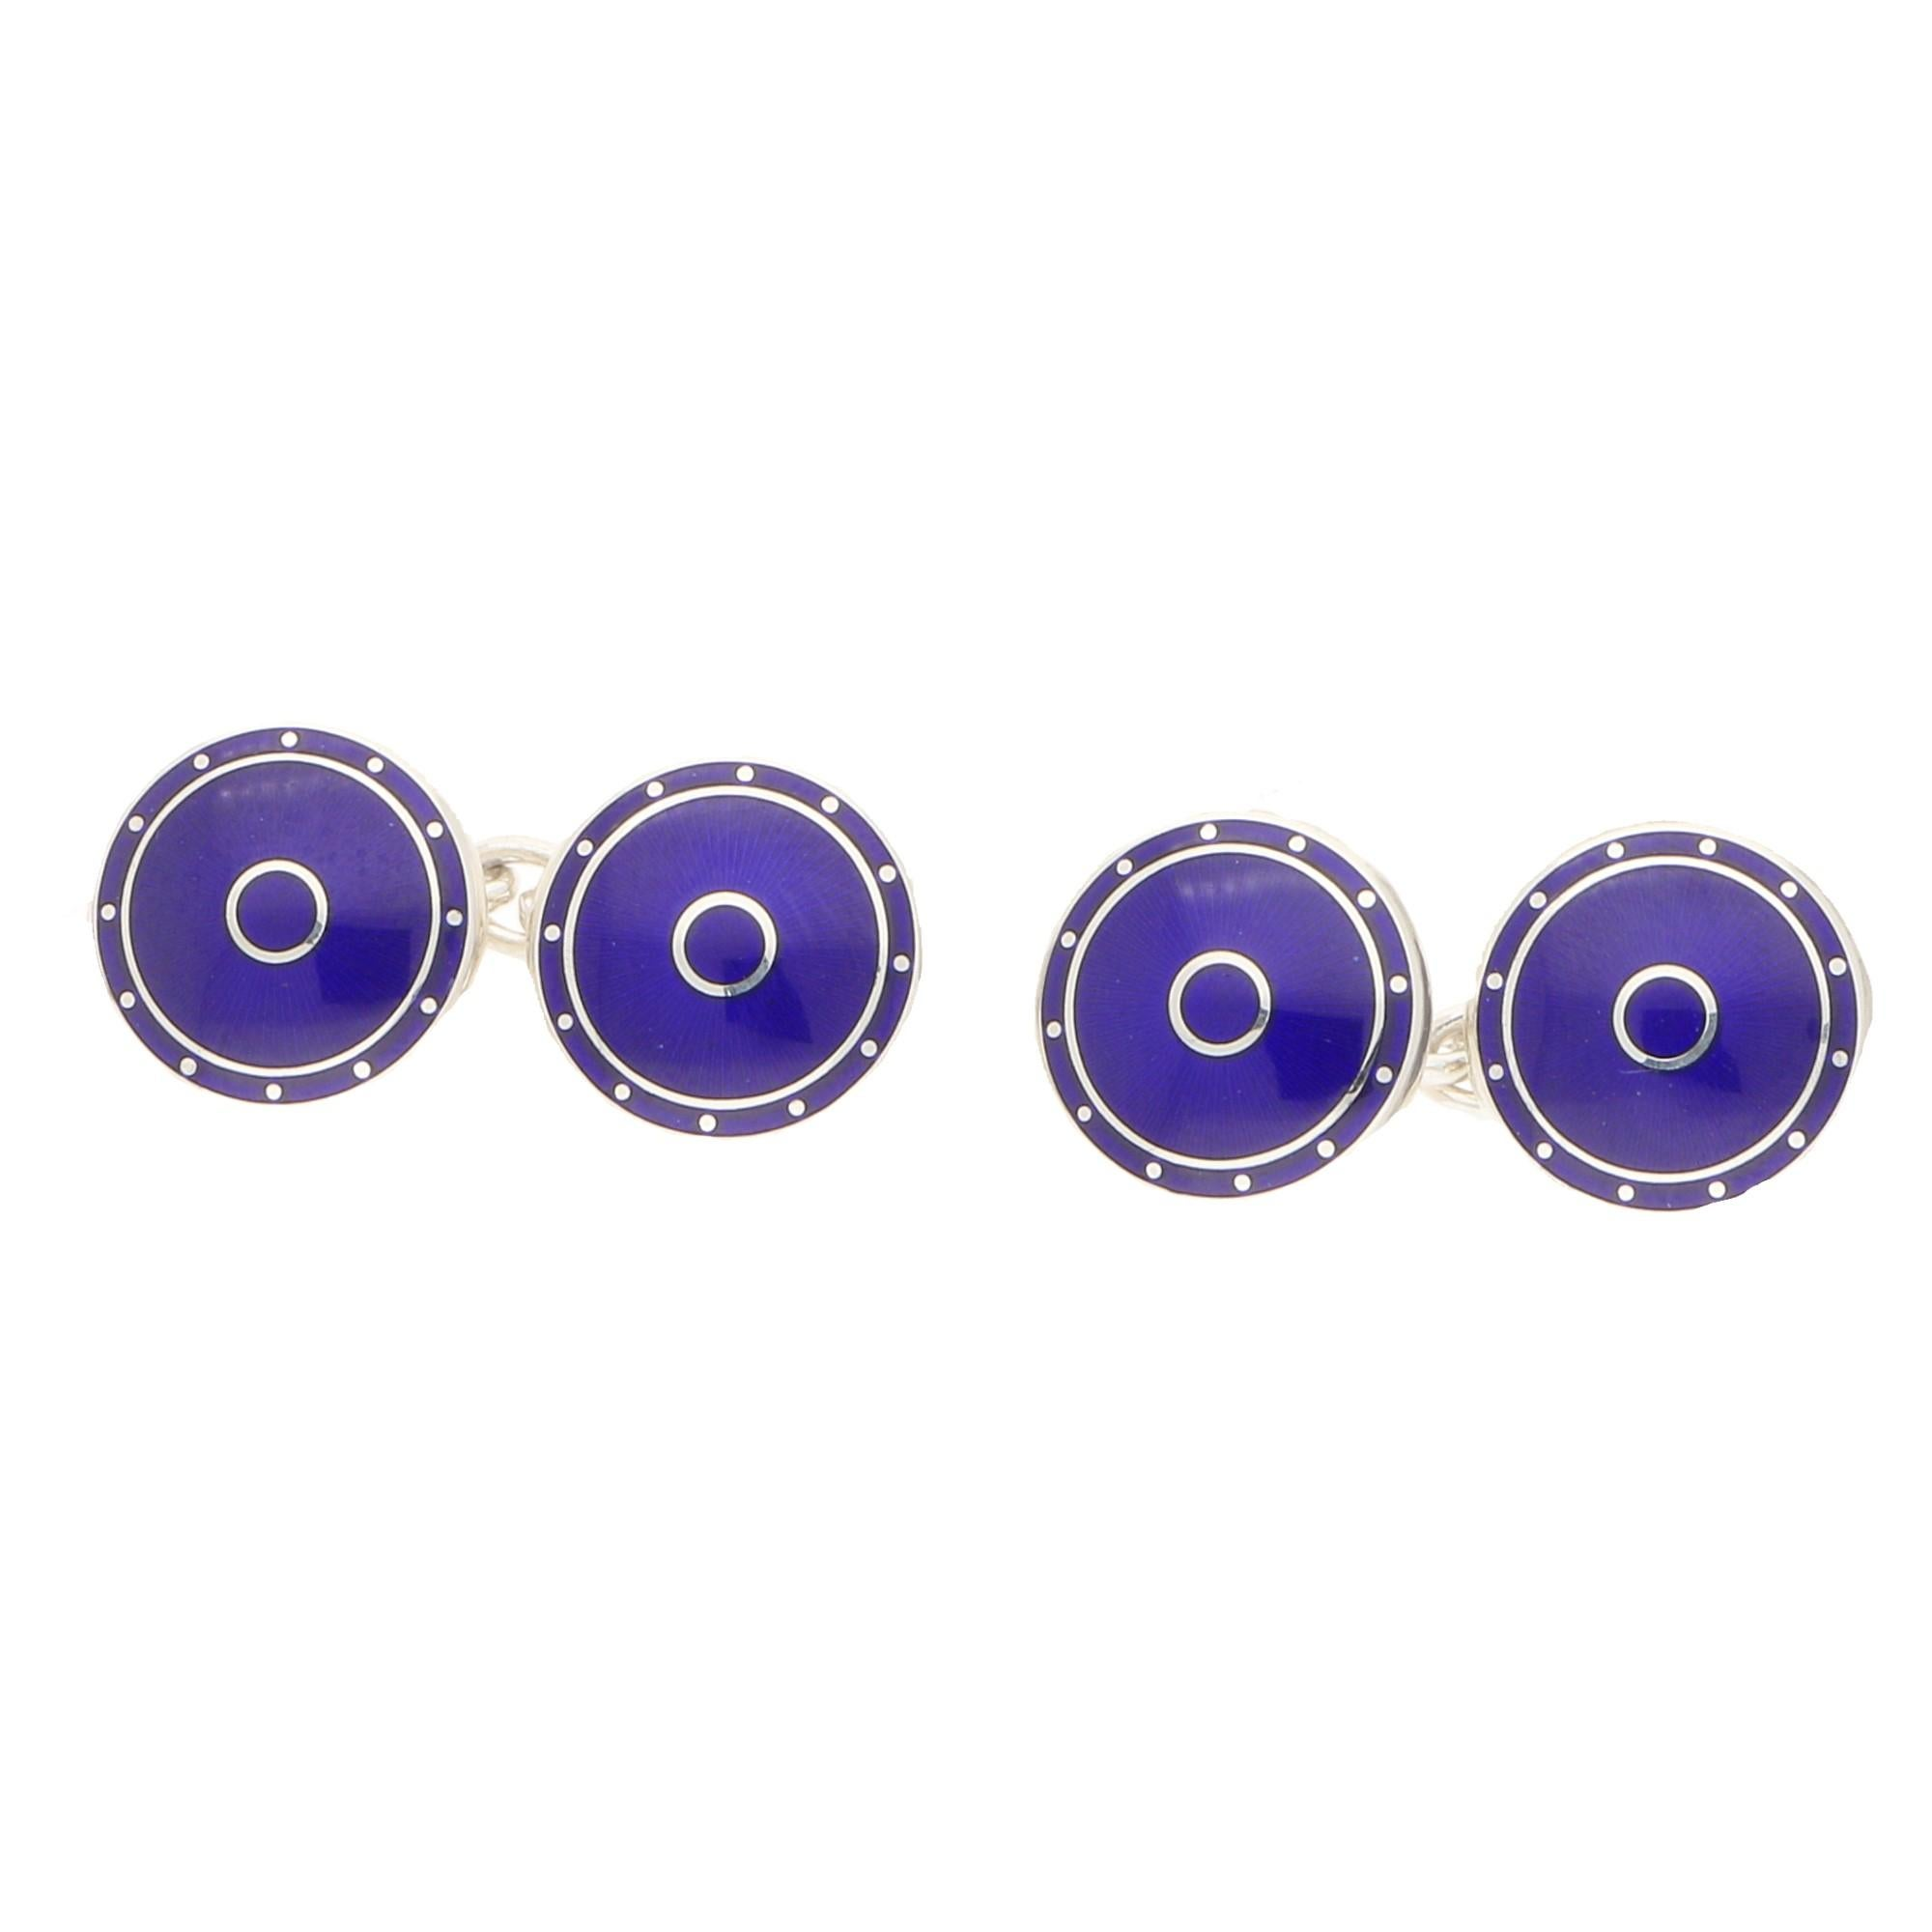 Blue Enamel Round Chain Link Cuff-links in Sterling Silver